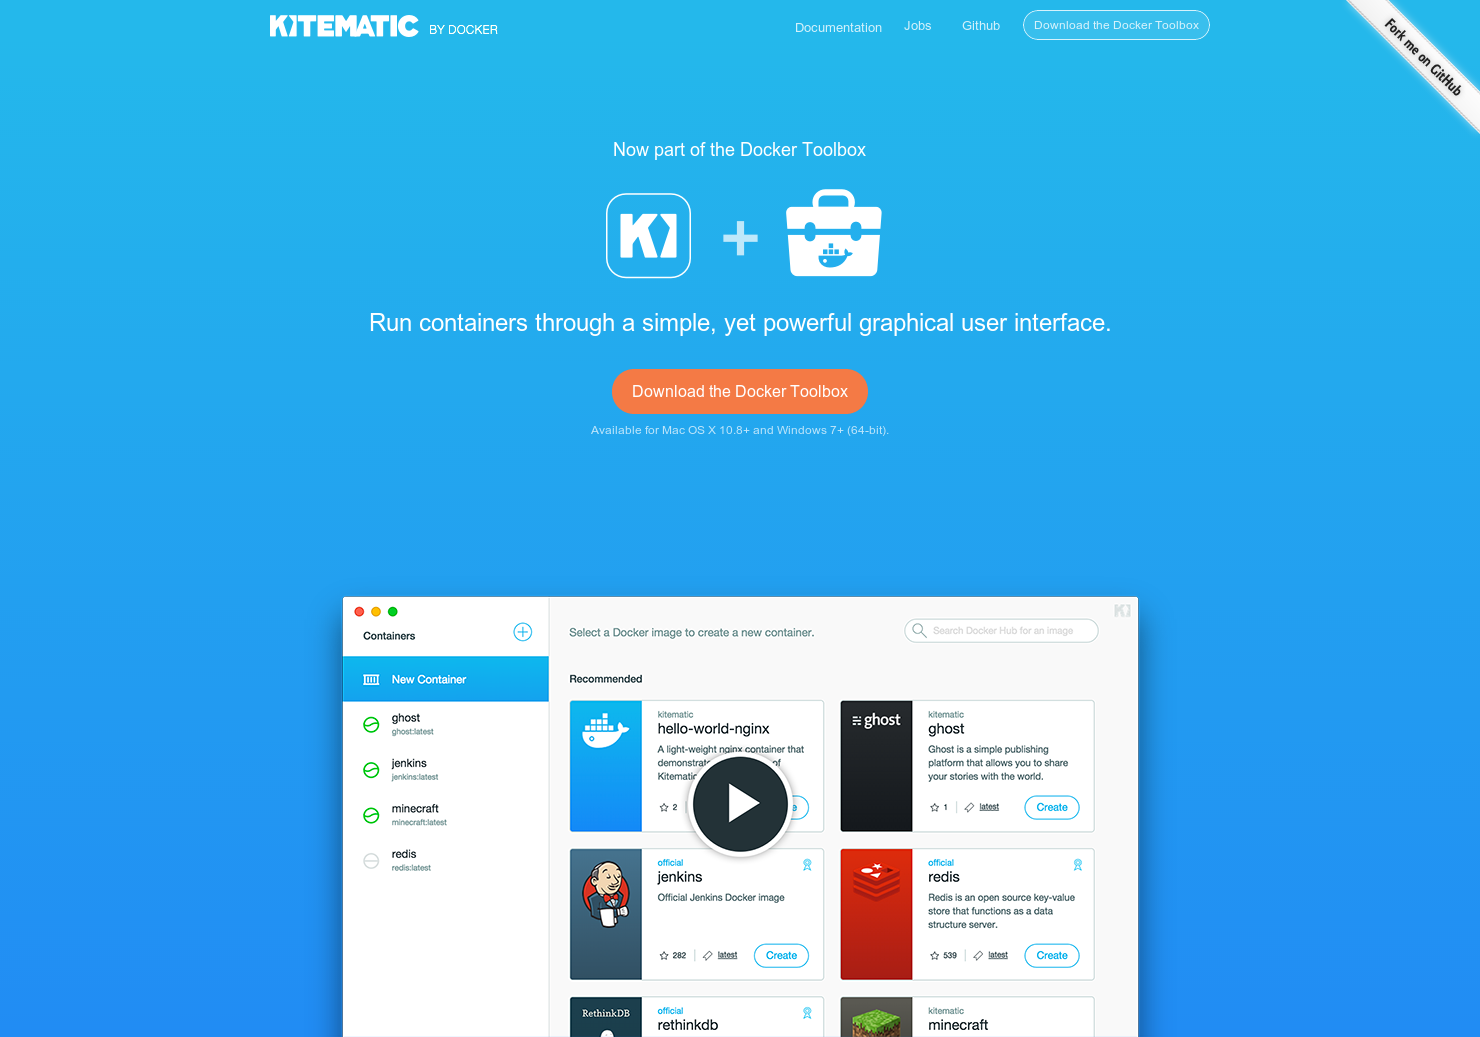 Kitematic - The easiest way to start using Docker on your Mac